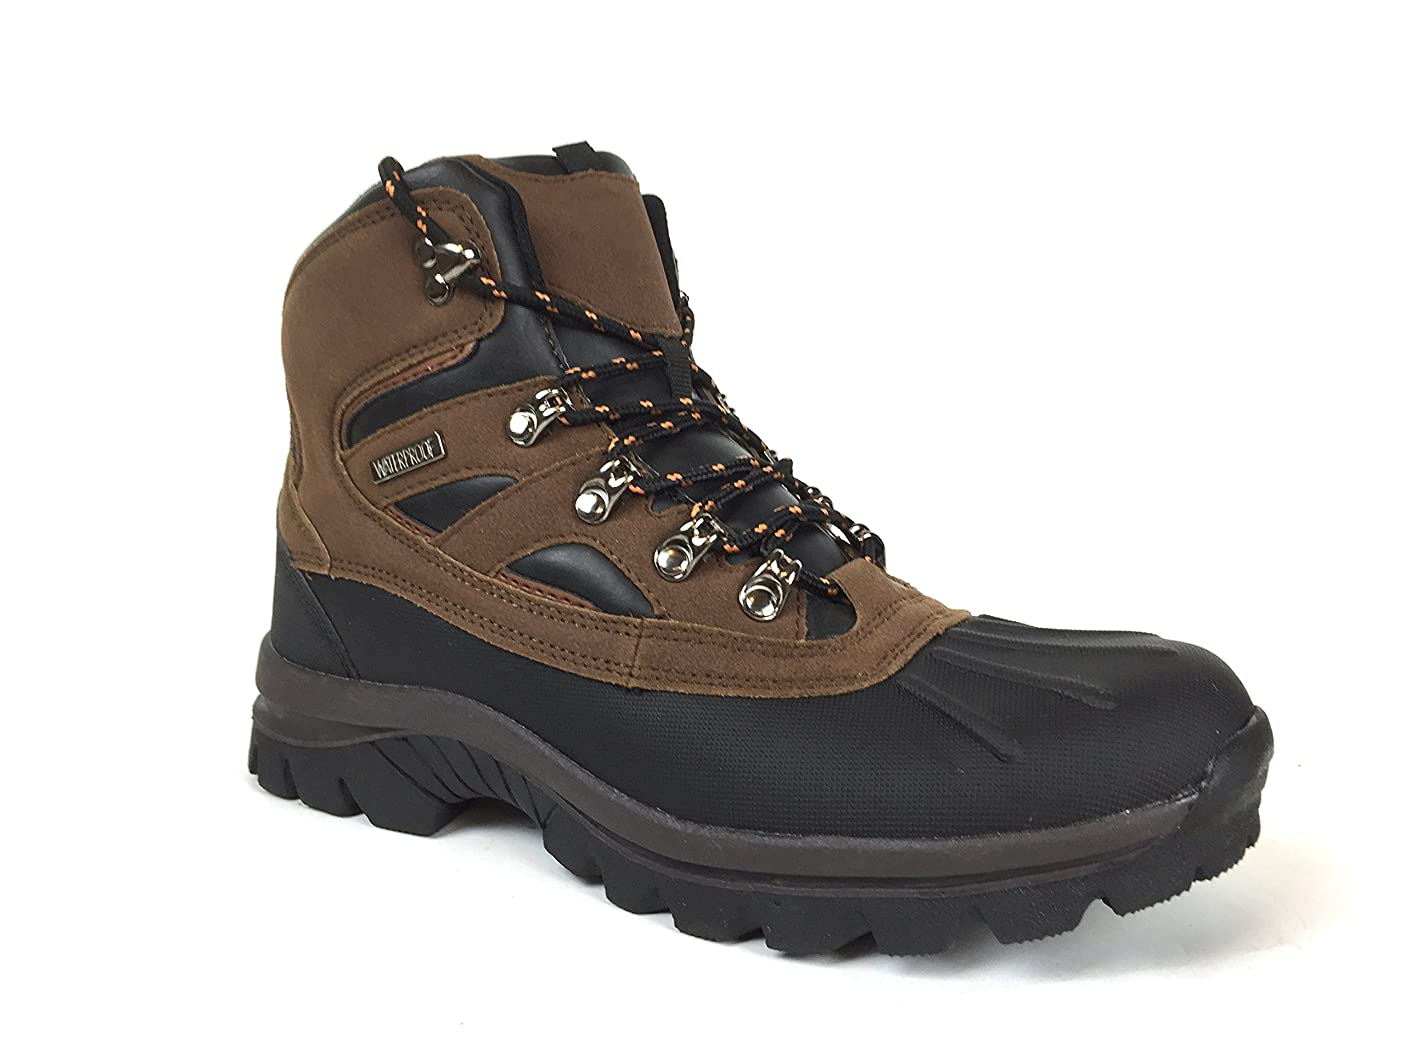 938f42c19e1 LABO Men's Waterproof Working Boot rkoqfnelqte613 - tembredecarteret.com